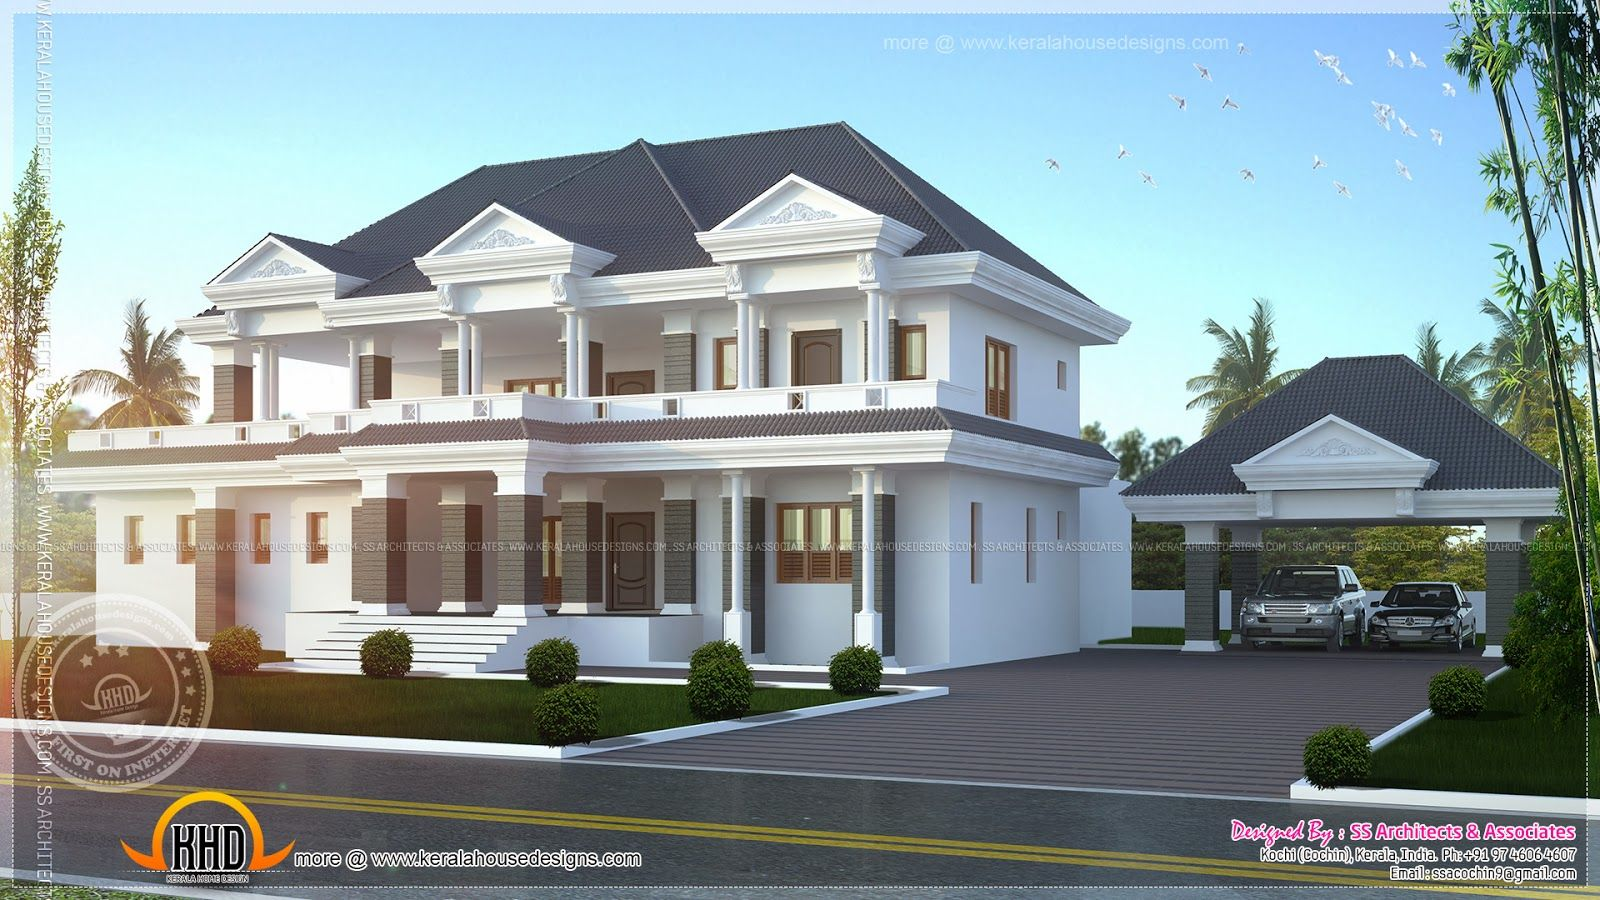 Luxury house plans posh luxury home plan audisb luxury luxury homes luxurious houses - New house design ...